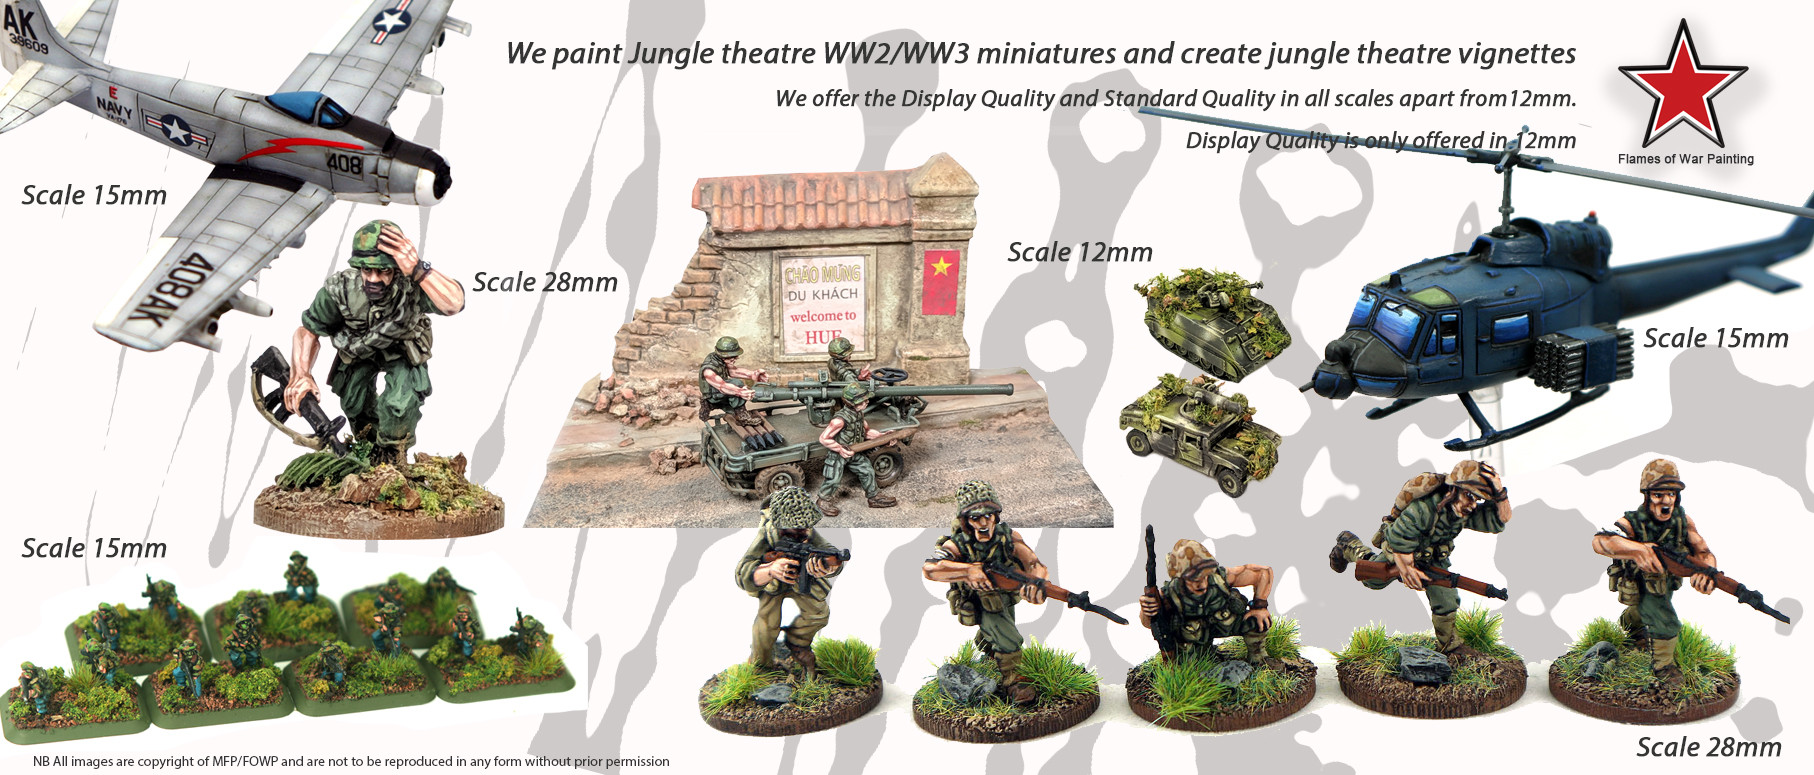 FOWP painted miniatures for jungle warfare